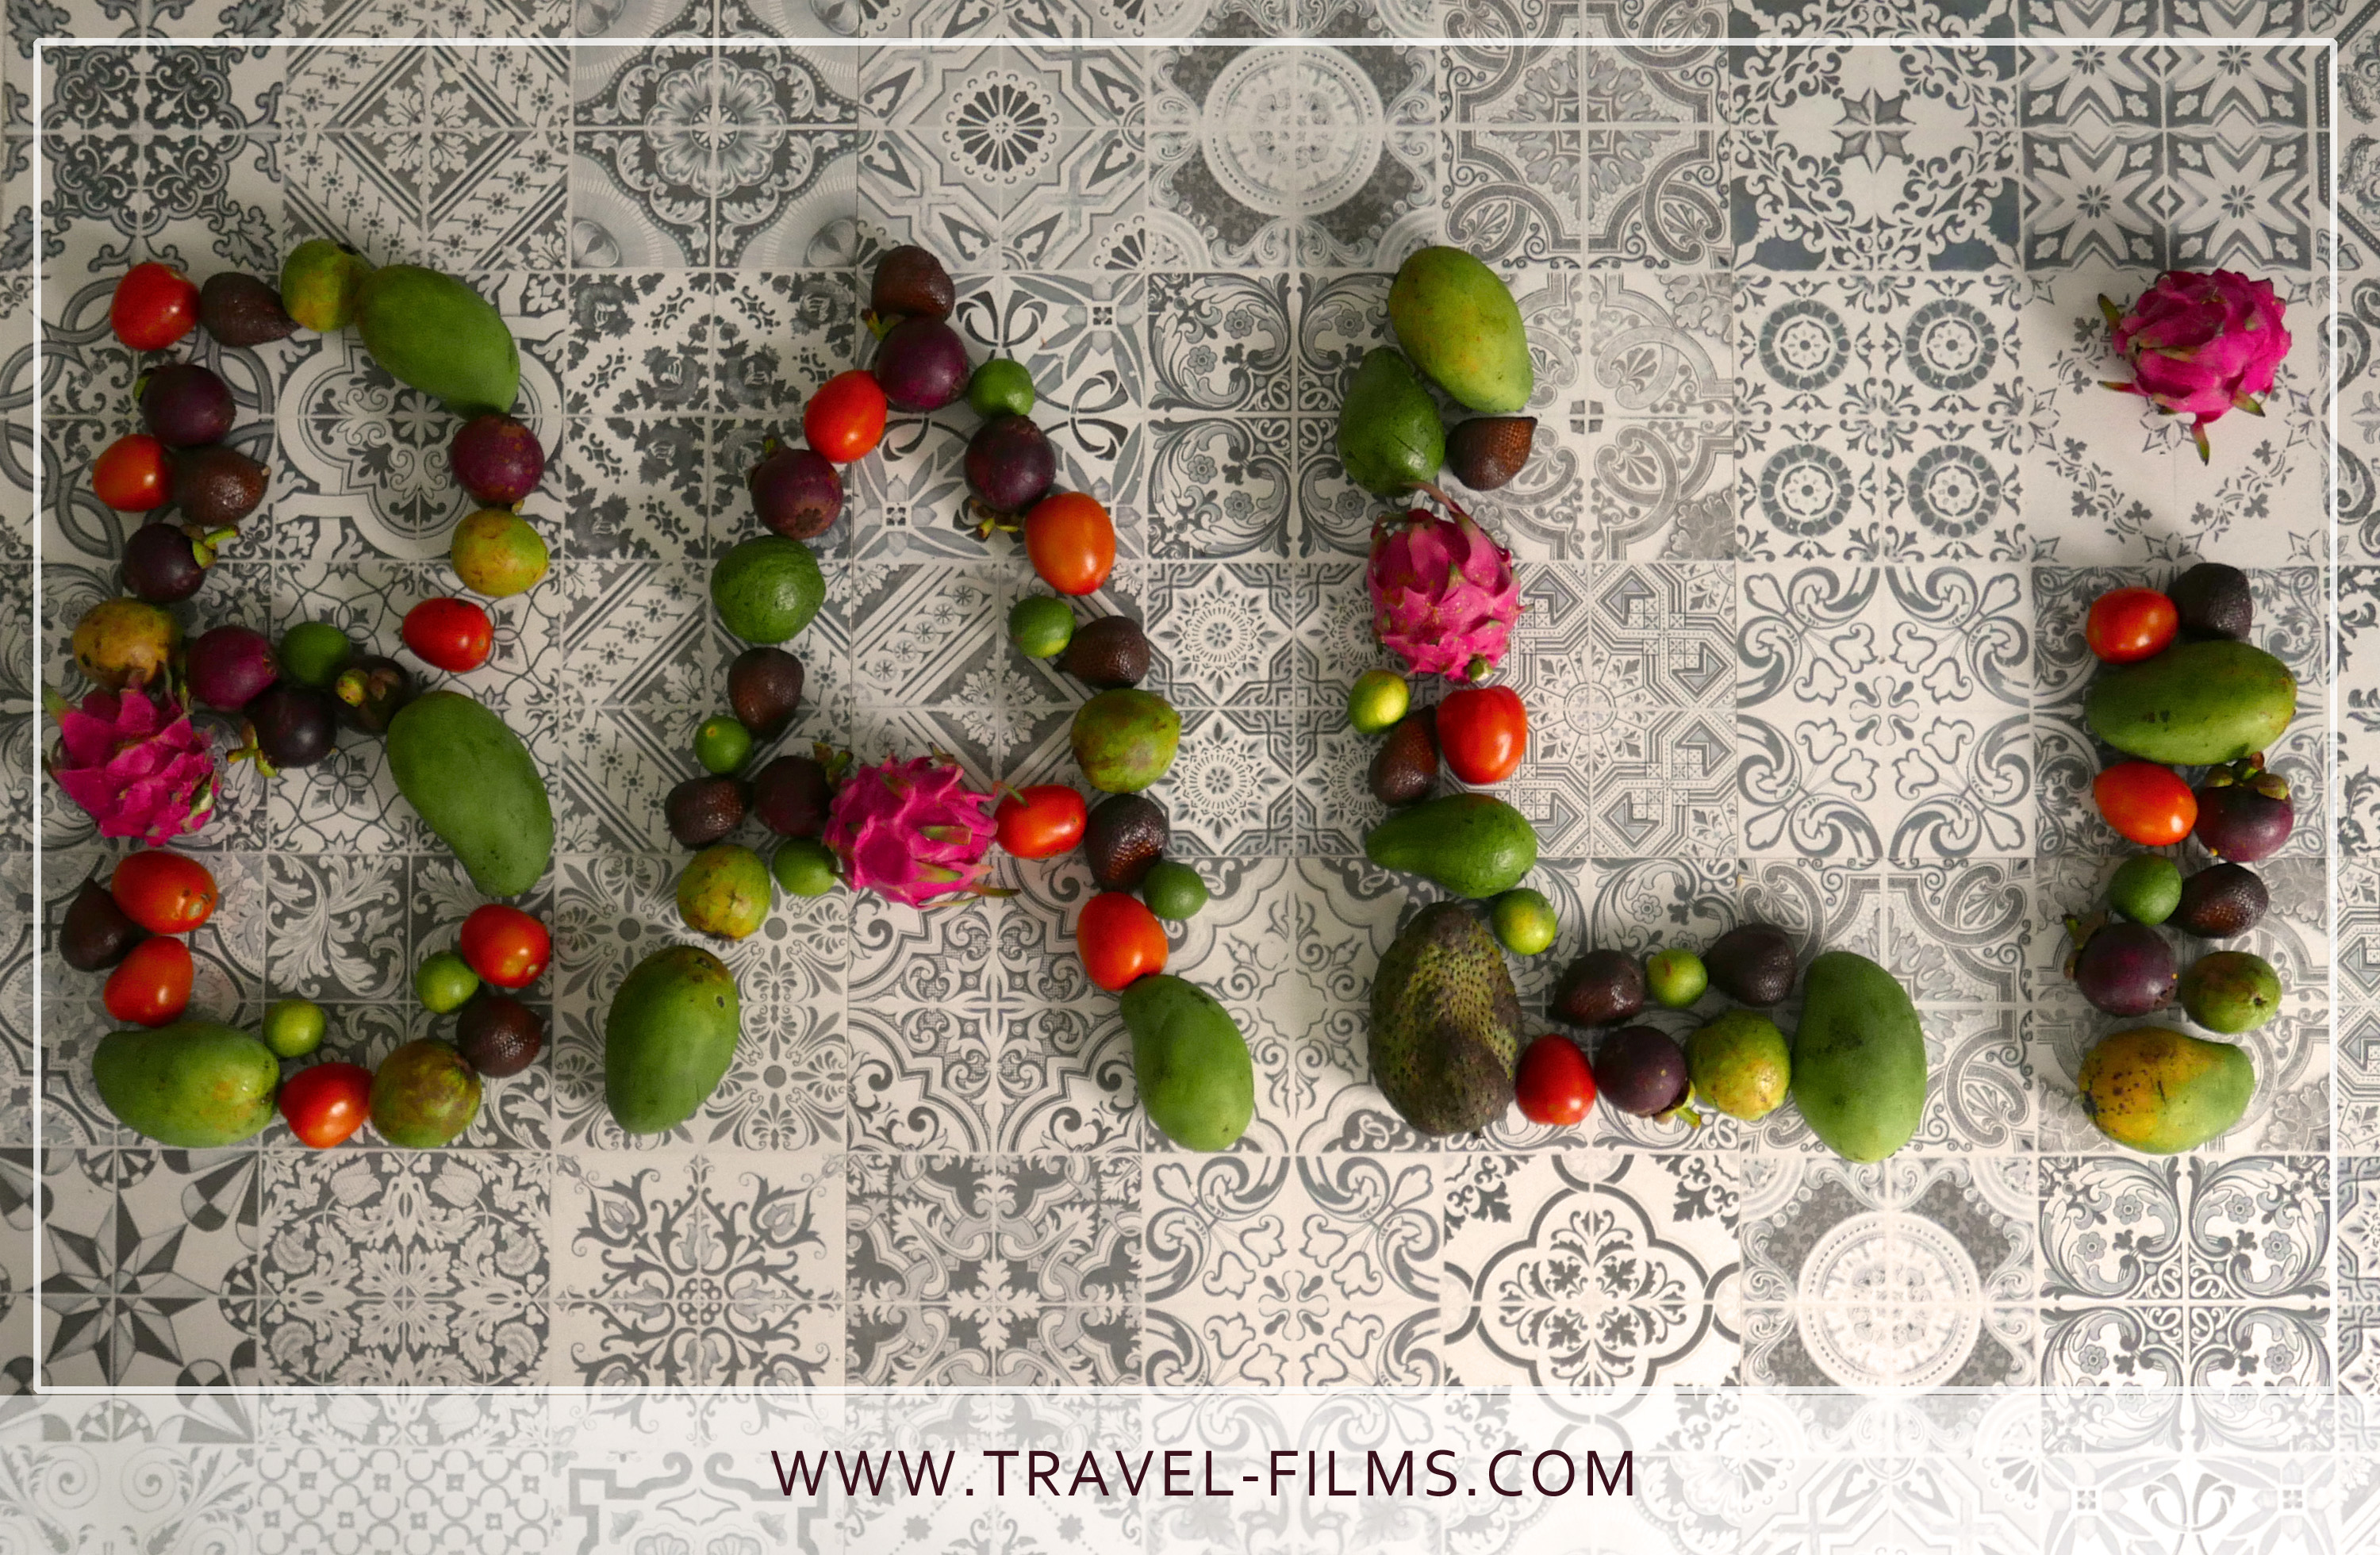 Bali fruits travel films bogdanova